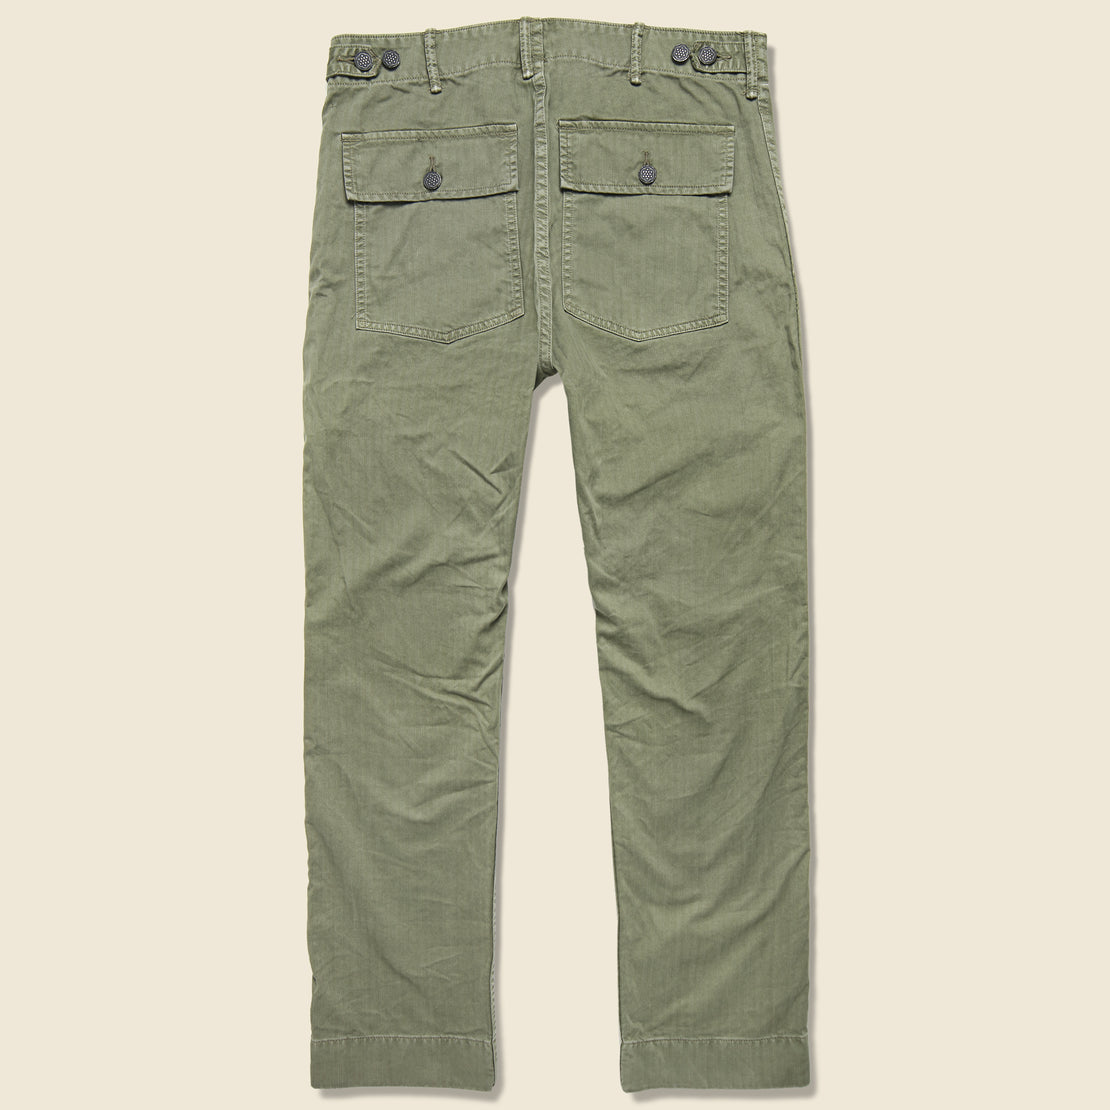 Army Cotton Herringbone Utility Pant - Brewster Green